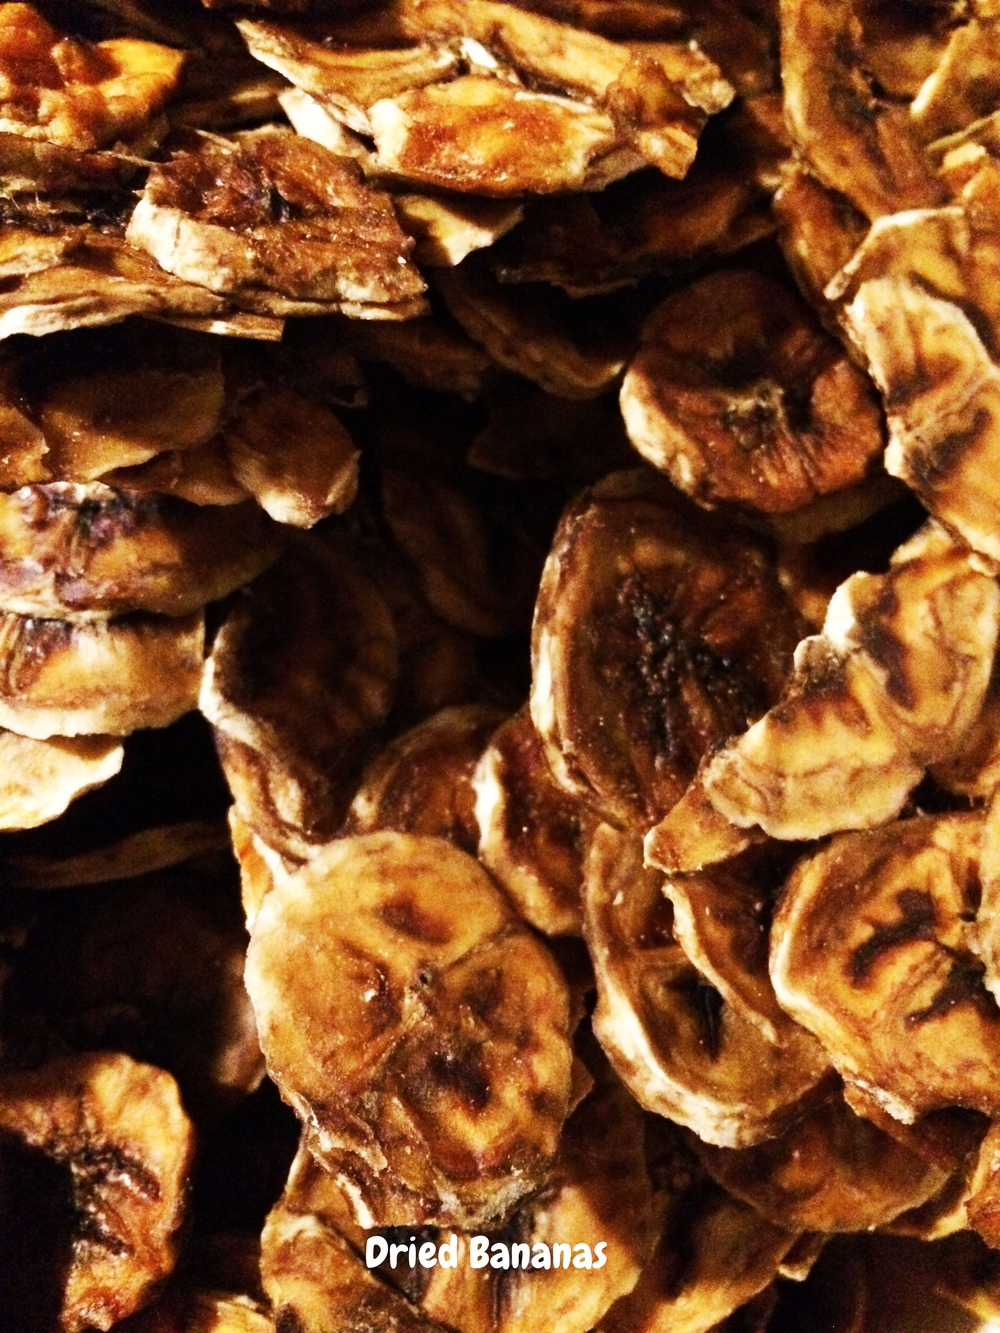 Dried Bananas.jpg